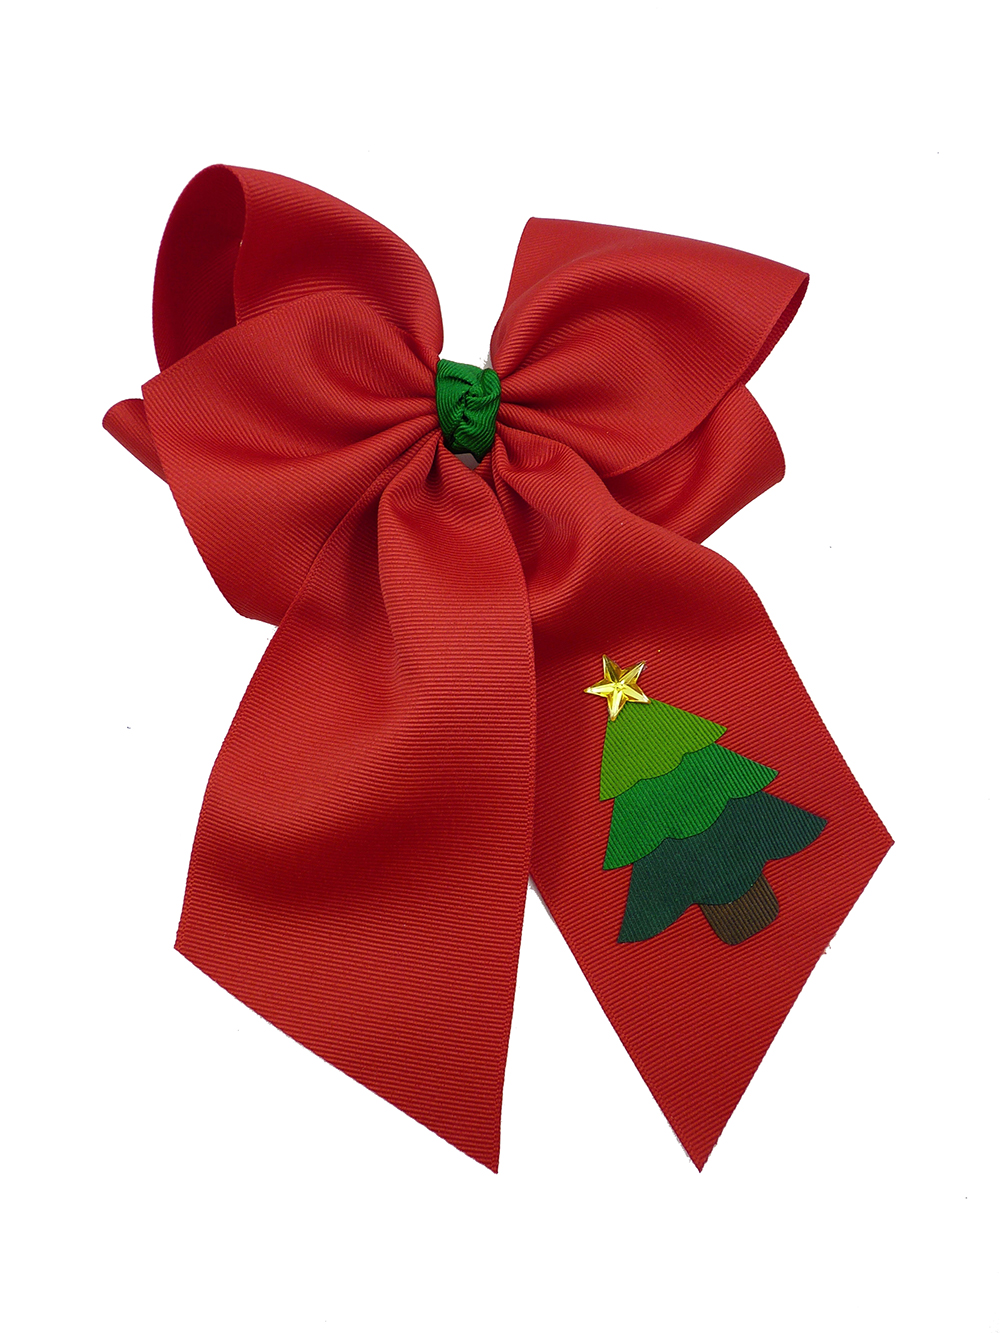 red star hair bow hairbow festive tree Christmas Xmas winter holiday